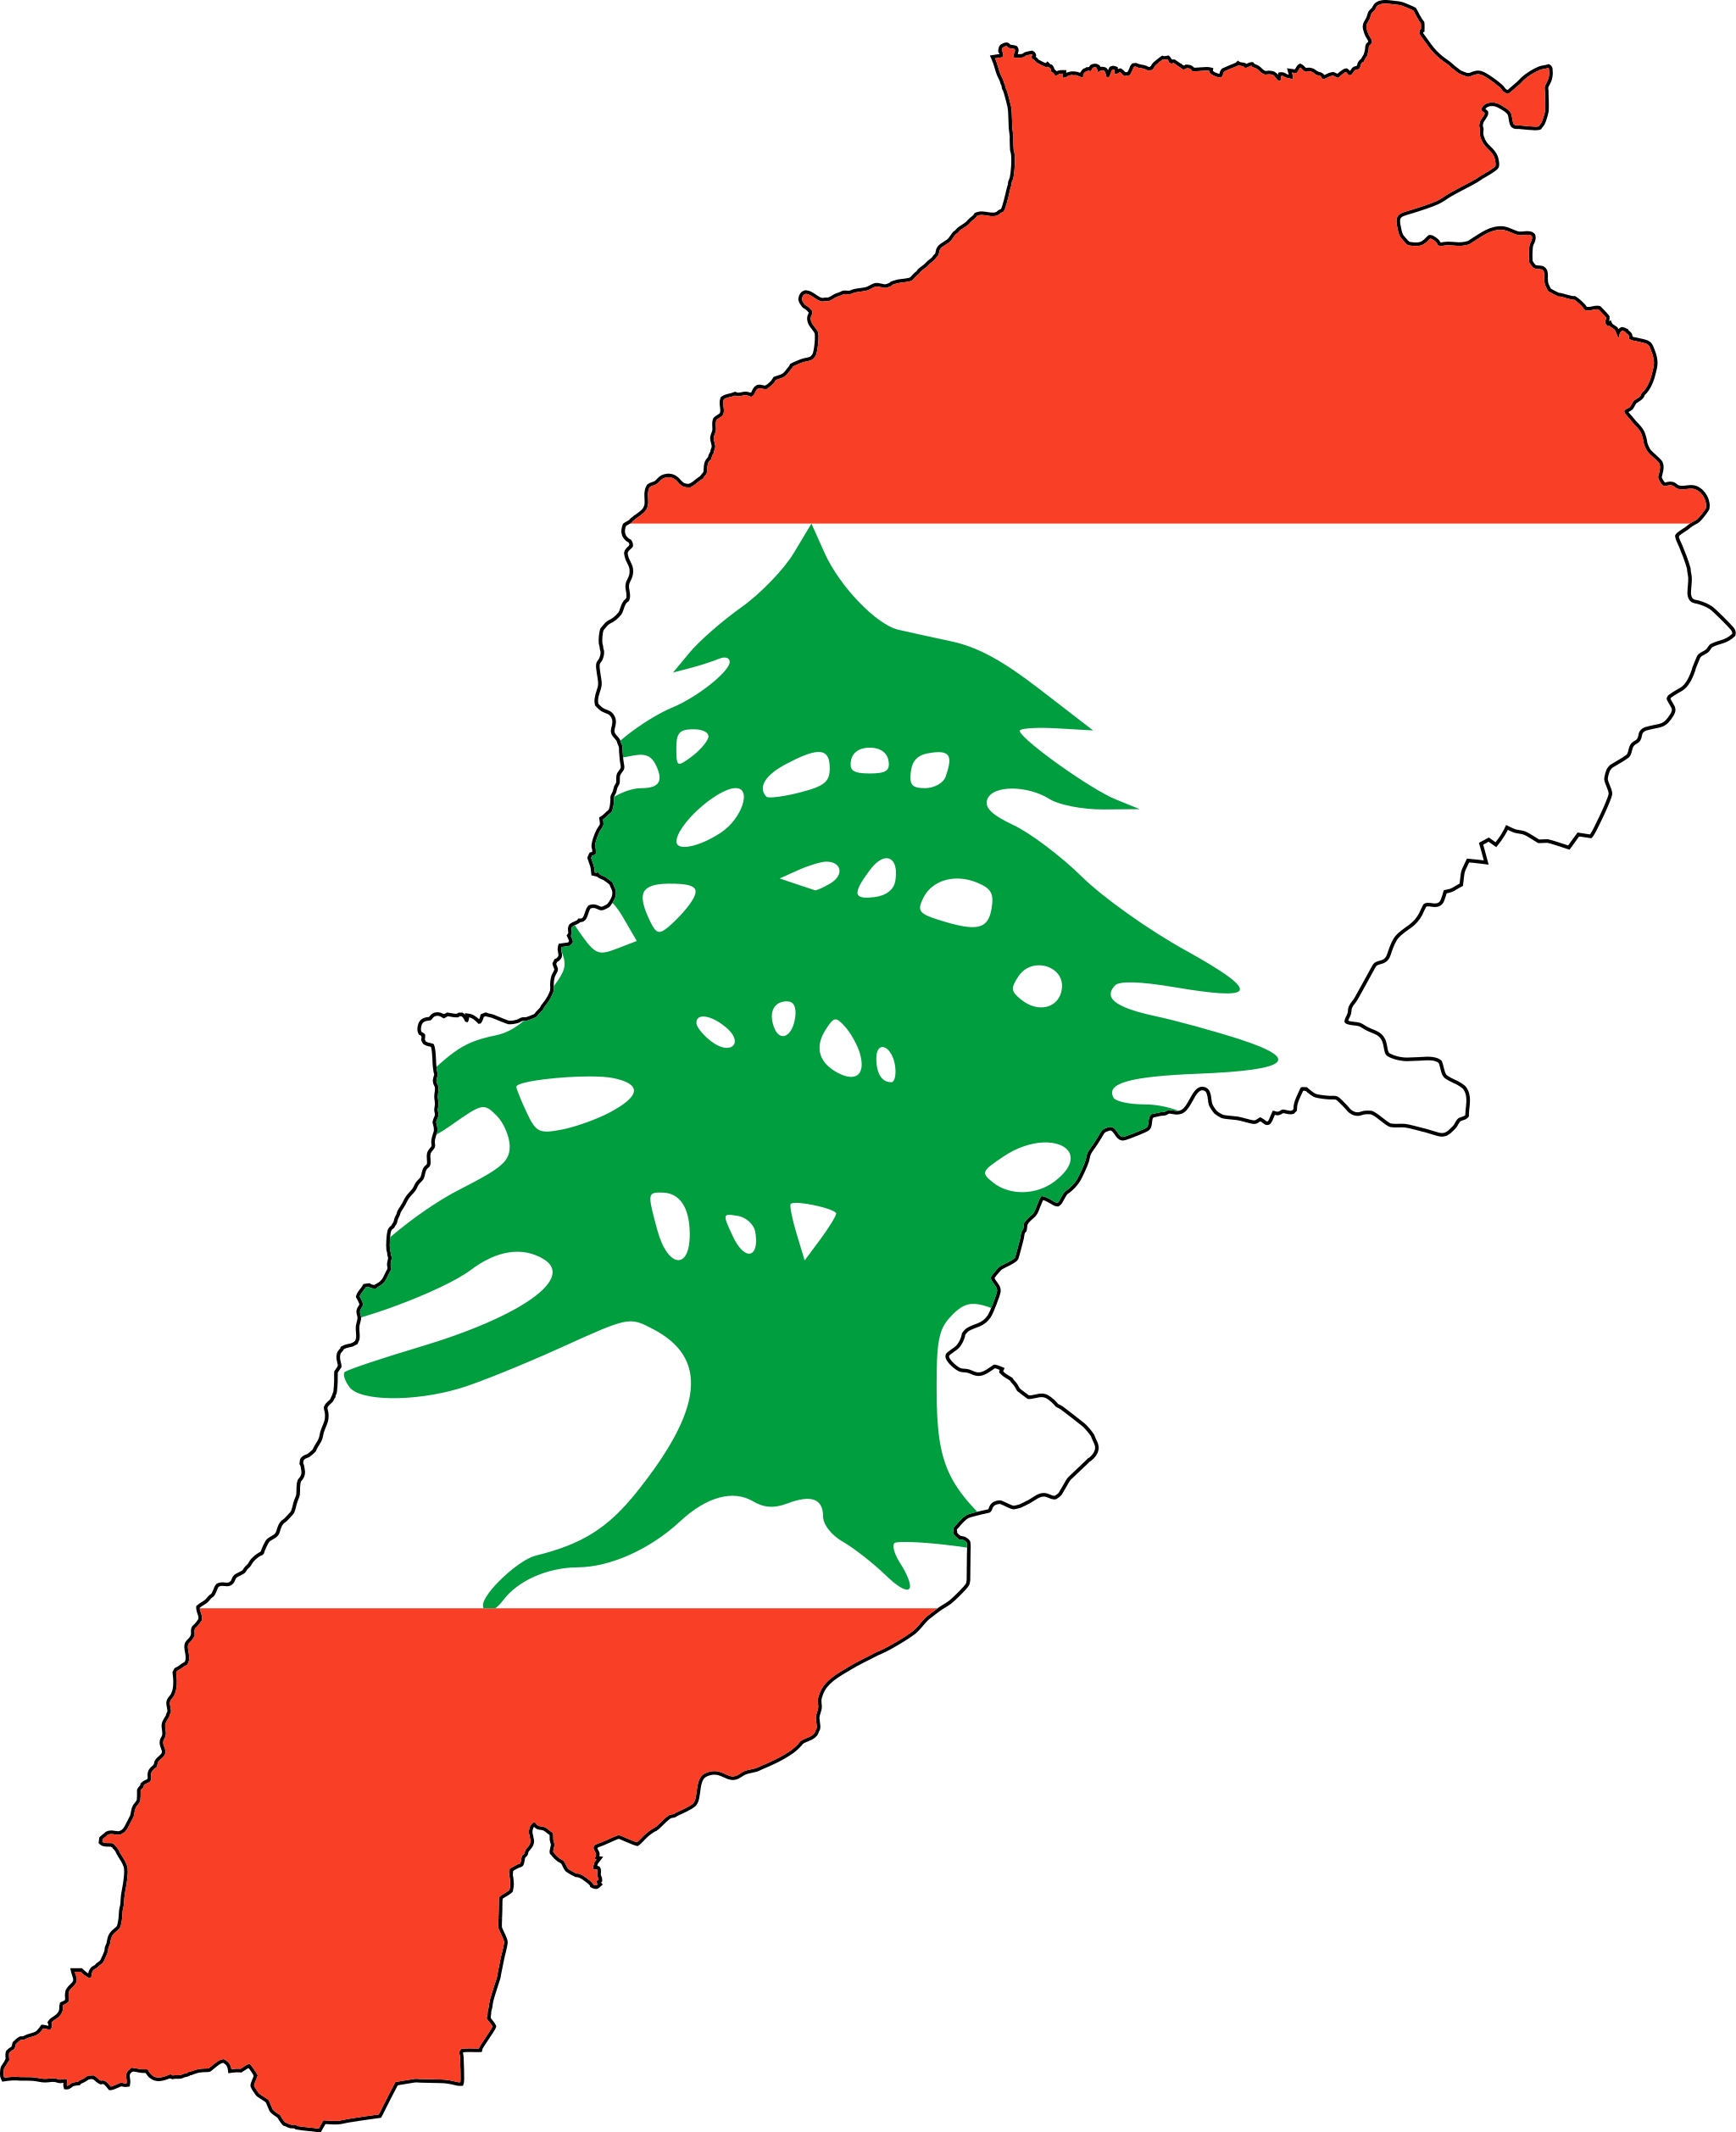 Mayflower clipart april shower. Lebanon flag map officially